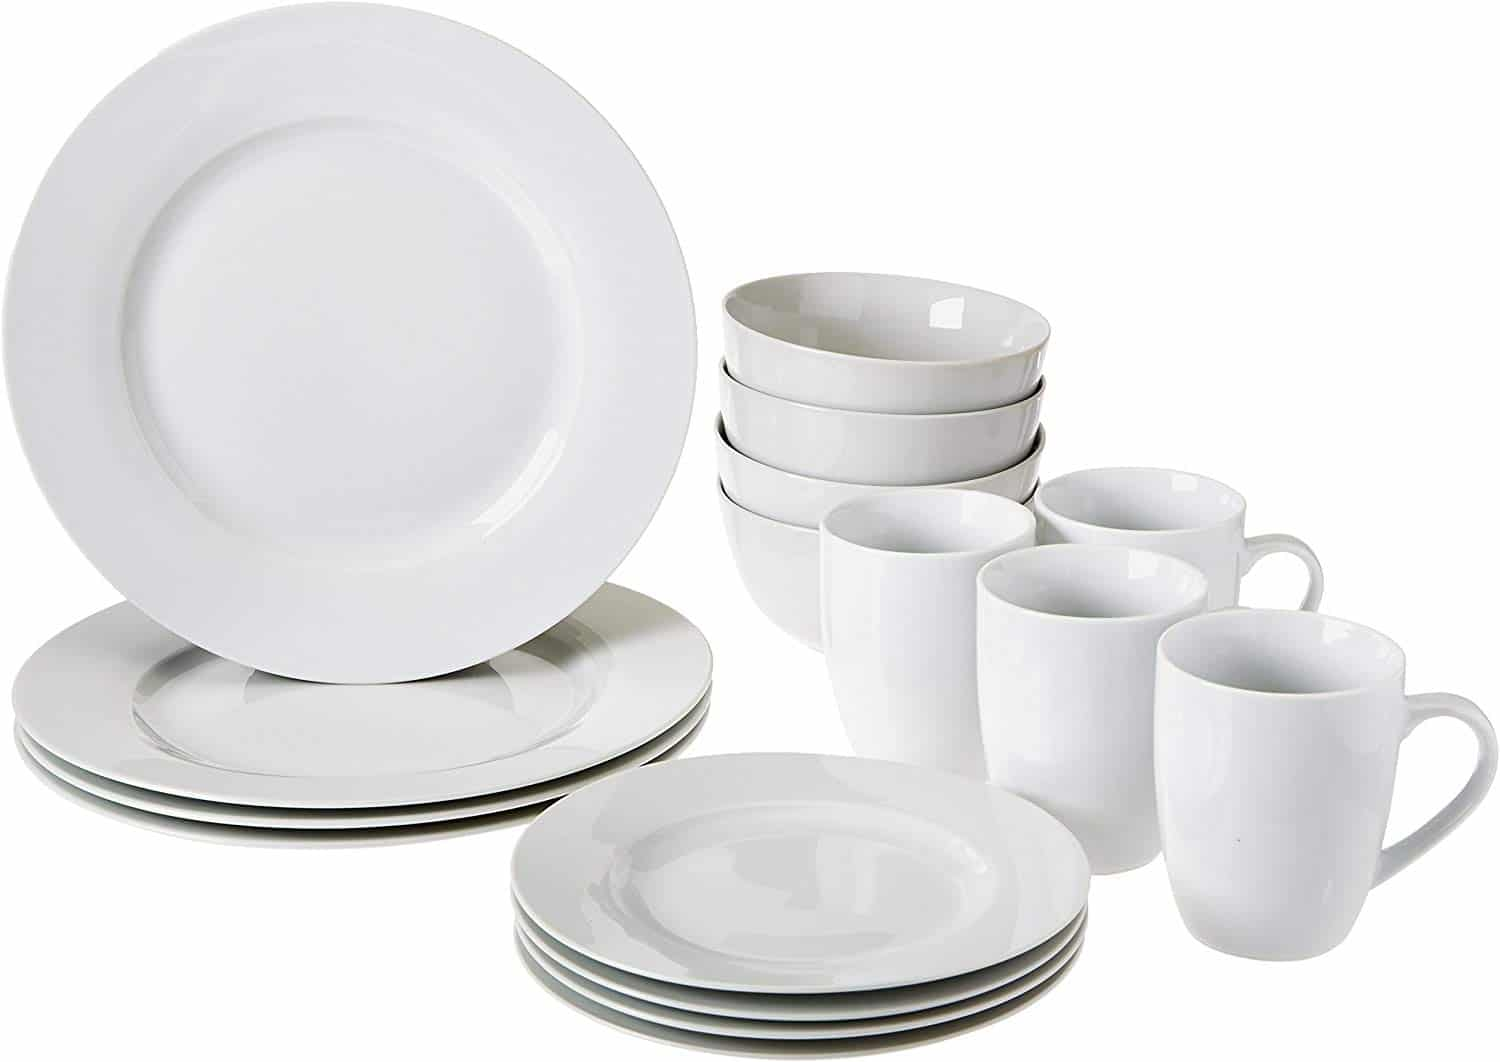 AmazonBasics dinner set